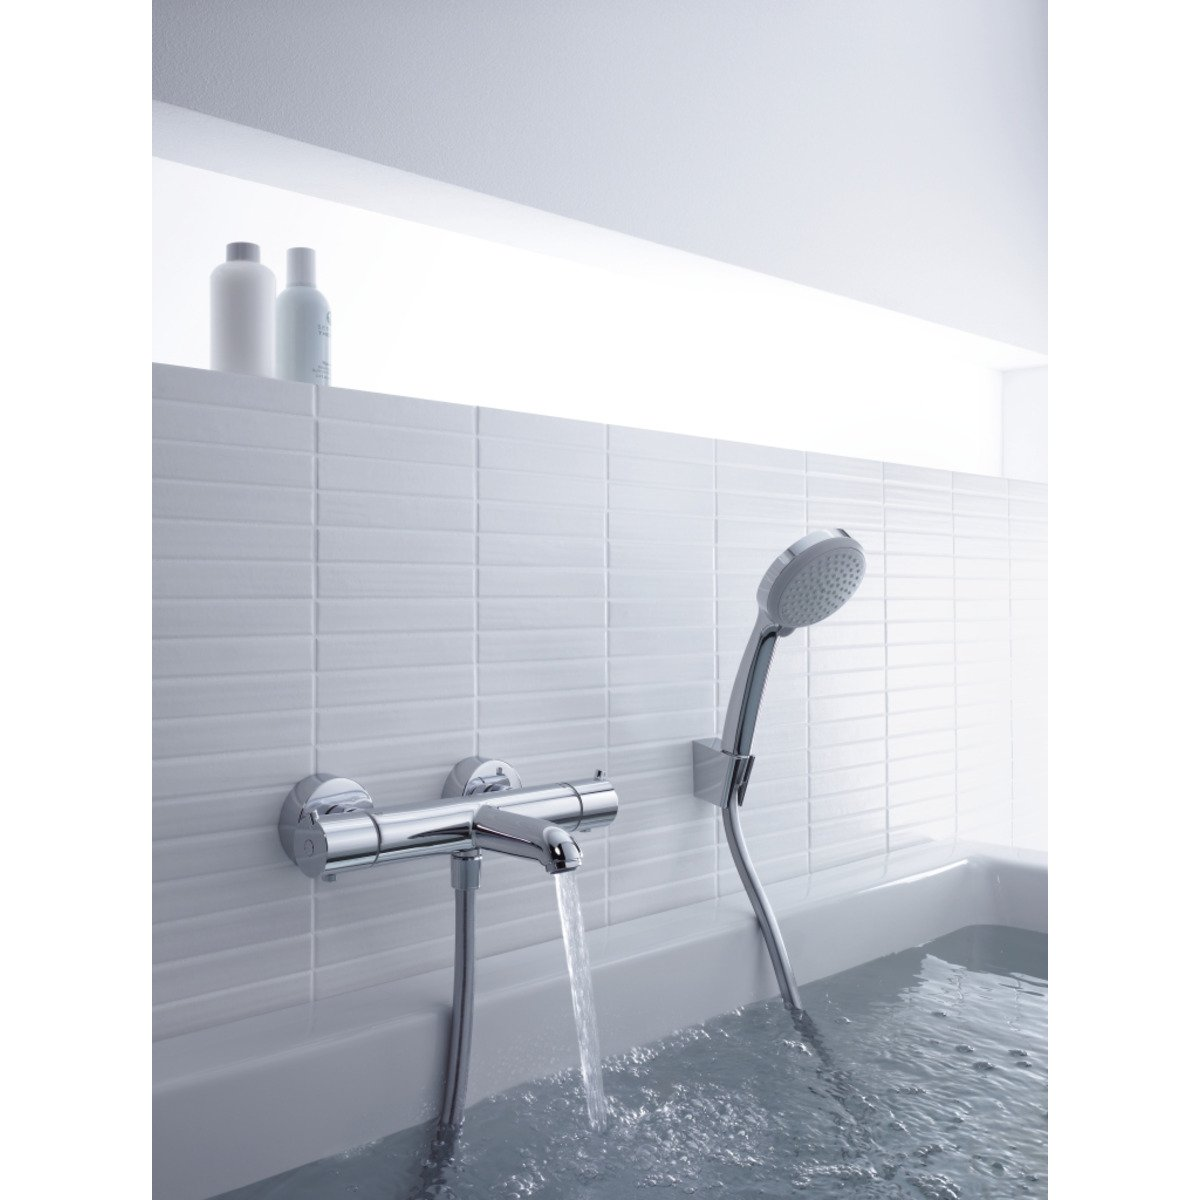 hansgrohe porter s wandhouder met handdouche croma 100 vario met slang 125cm chroom 27592000. Black Bedroom Furniture Sets. Home Design Ideas